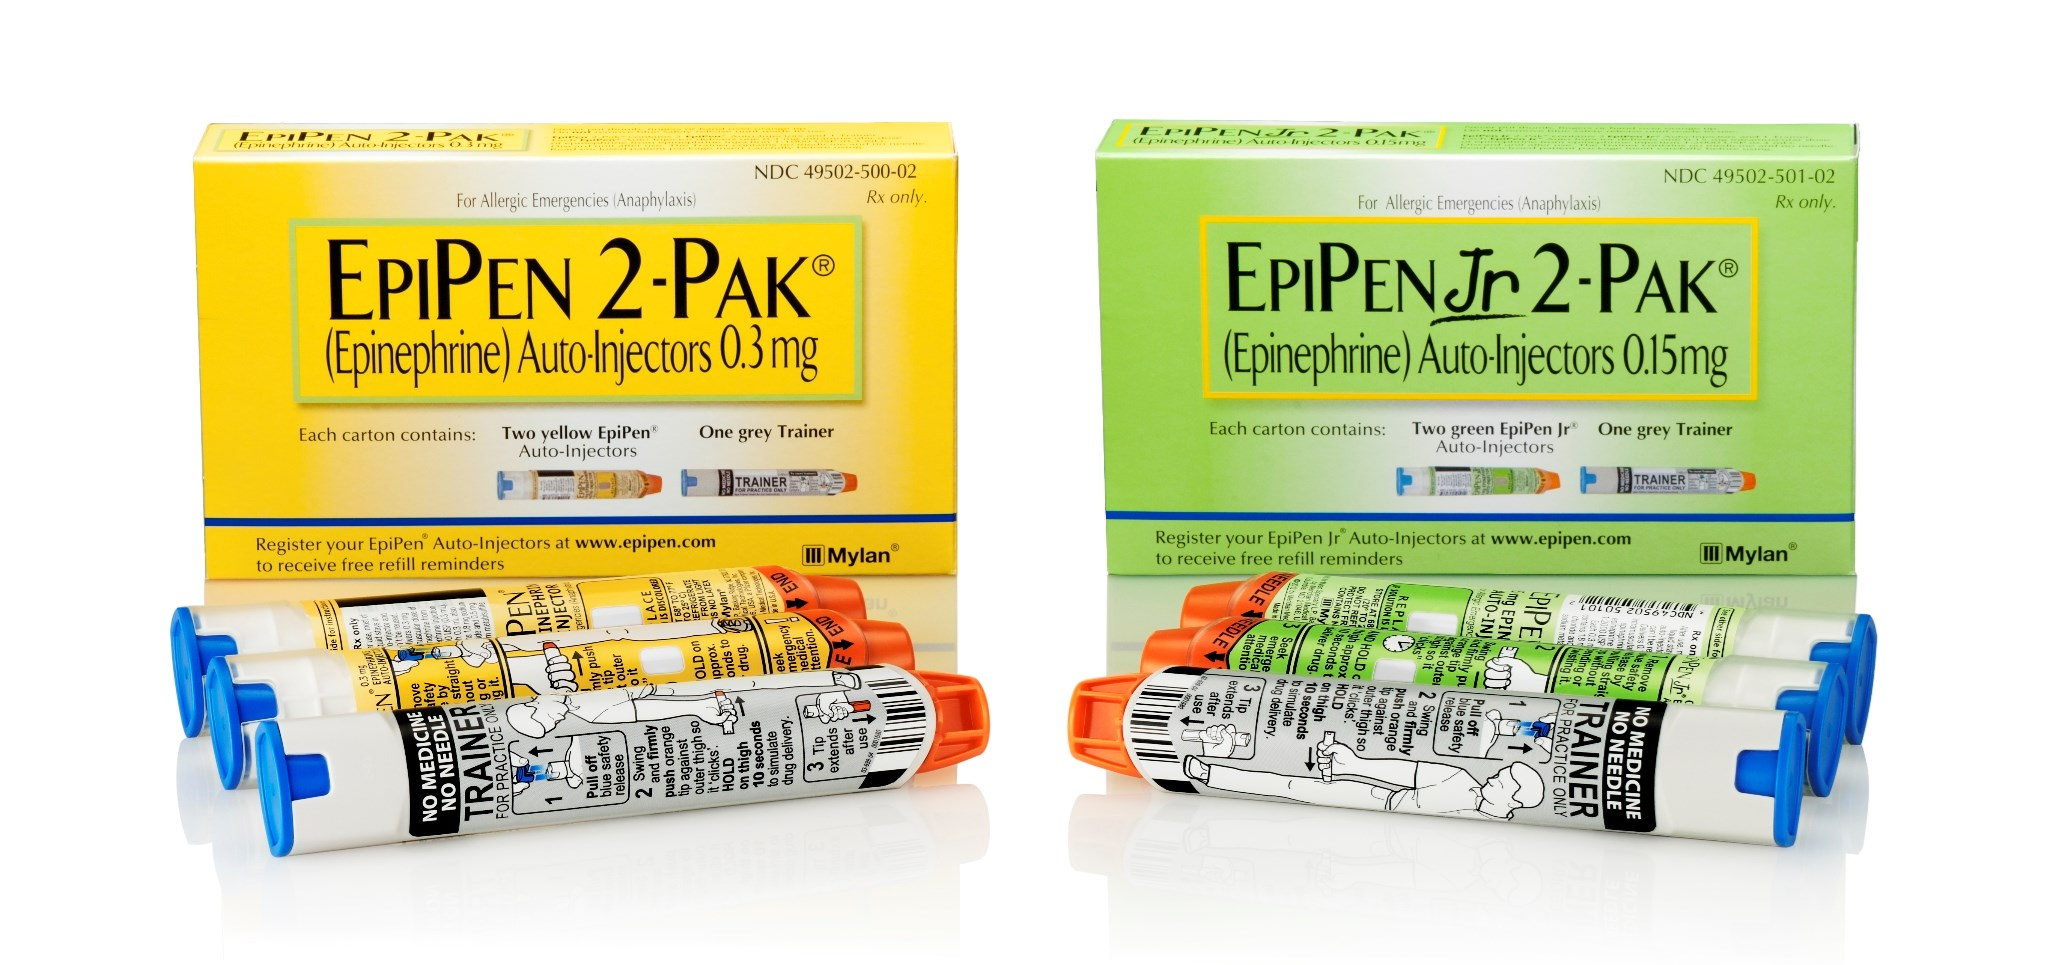 Timeline of a crisis: How Mylan responded to the EpiPen controversy